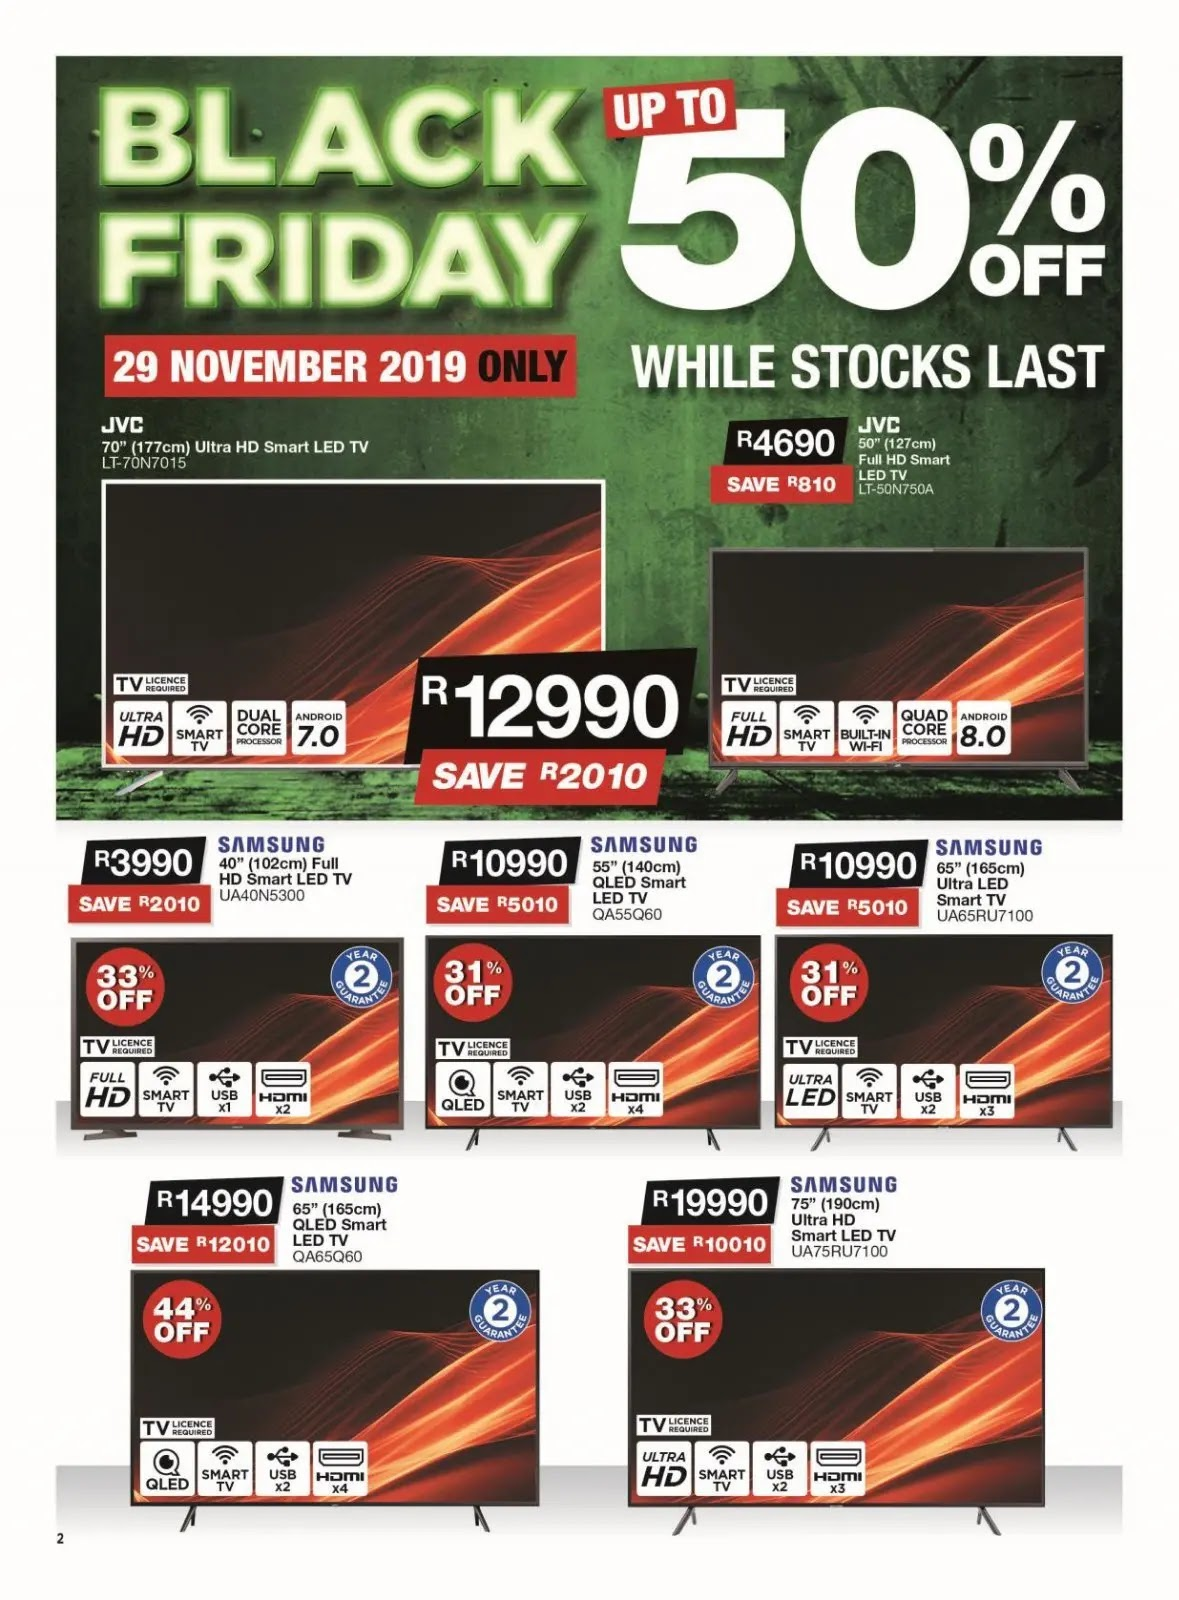 House & Home Black Friday Deals Page 2